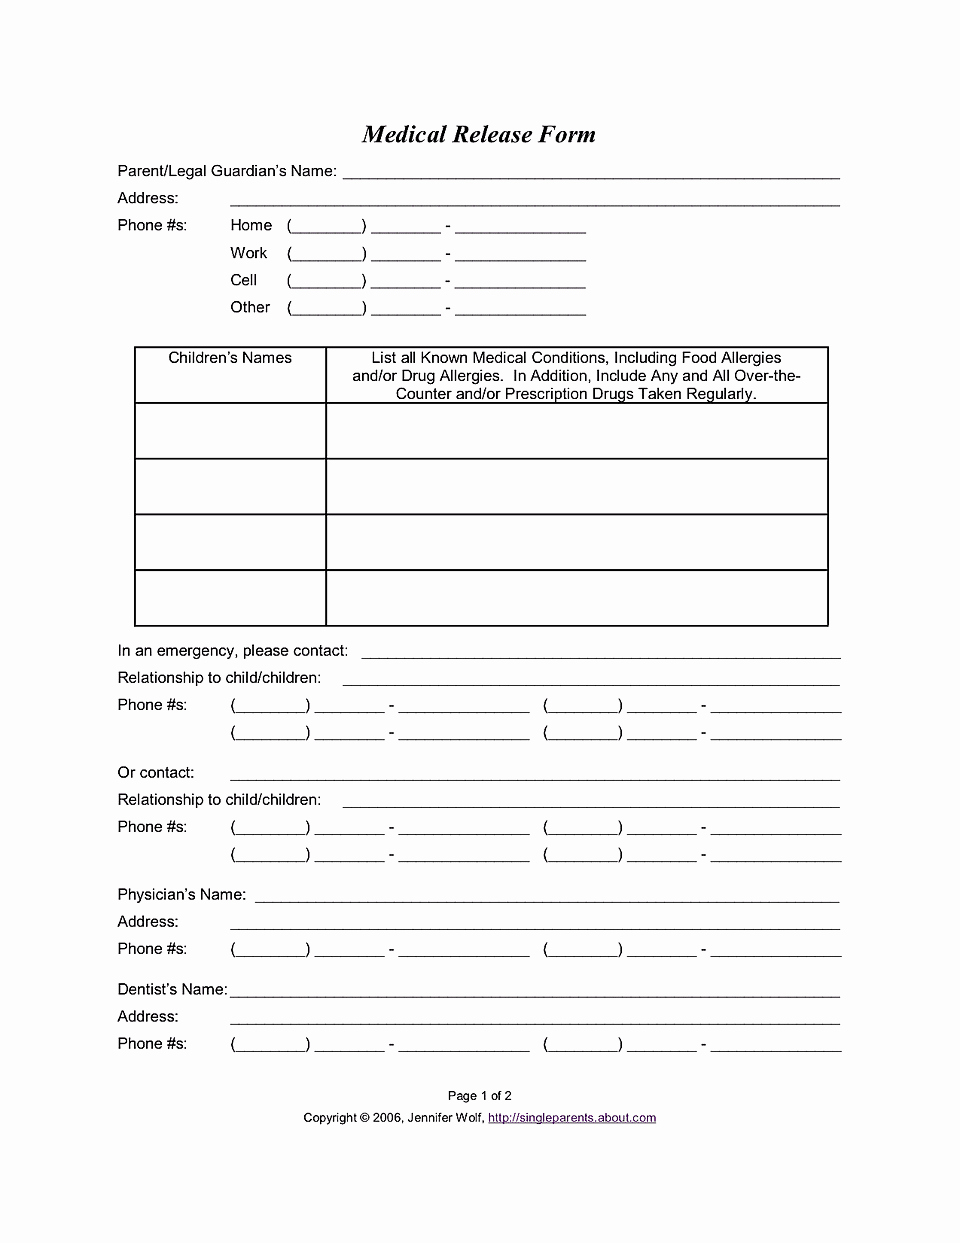 Consent to Treat form Template Elegant Medical Release form Consent to Treat Your Kids Free